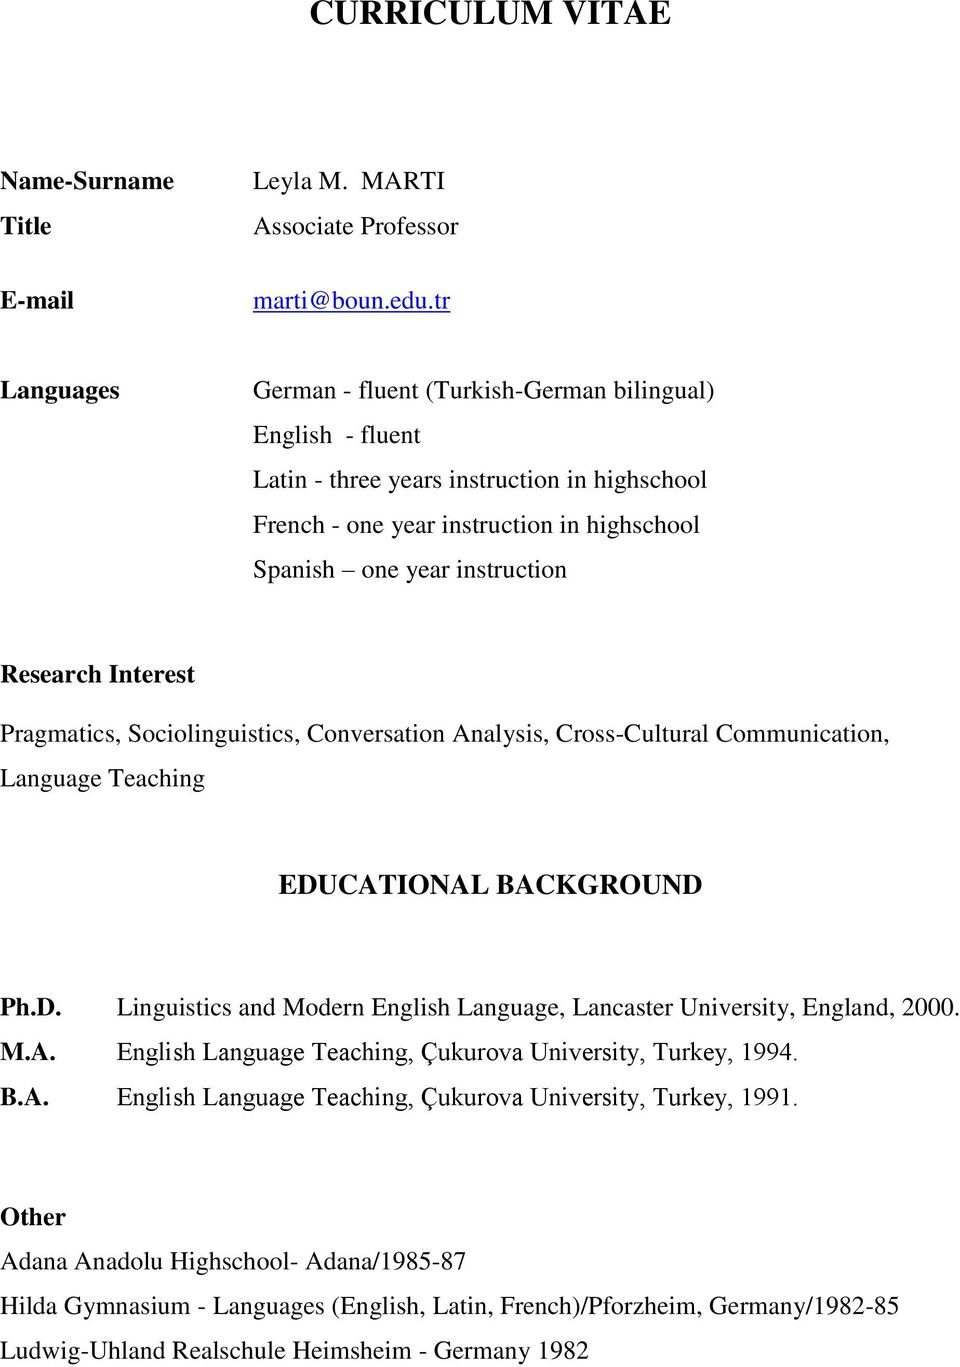 Curriculum Vitae Pragmatics Sociolinguistics Conversation